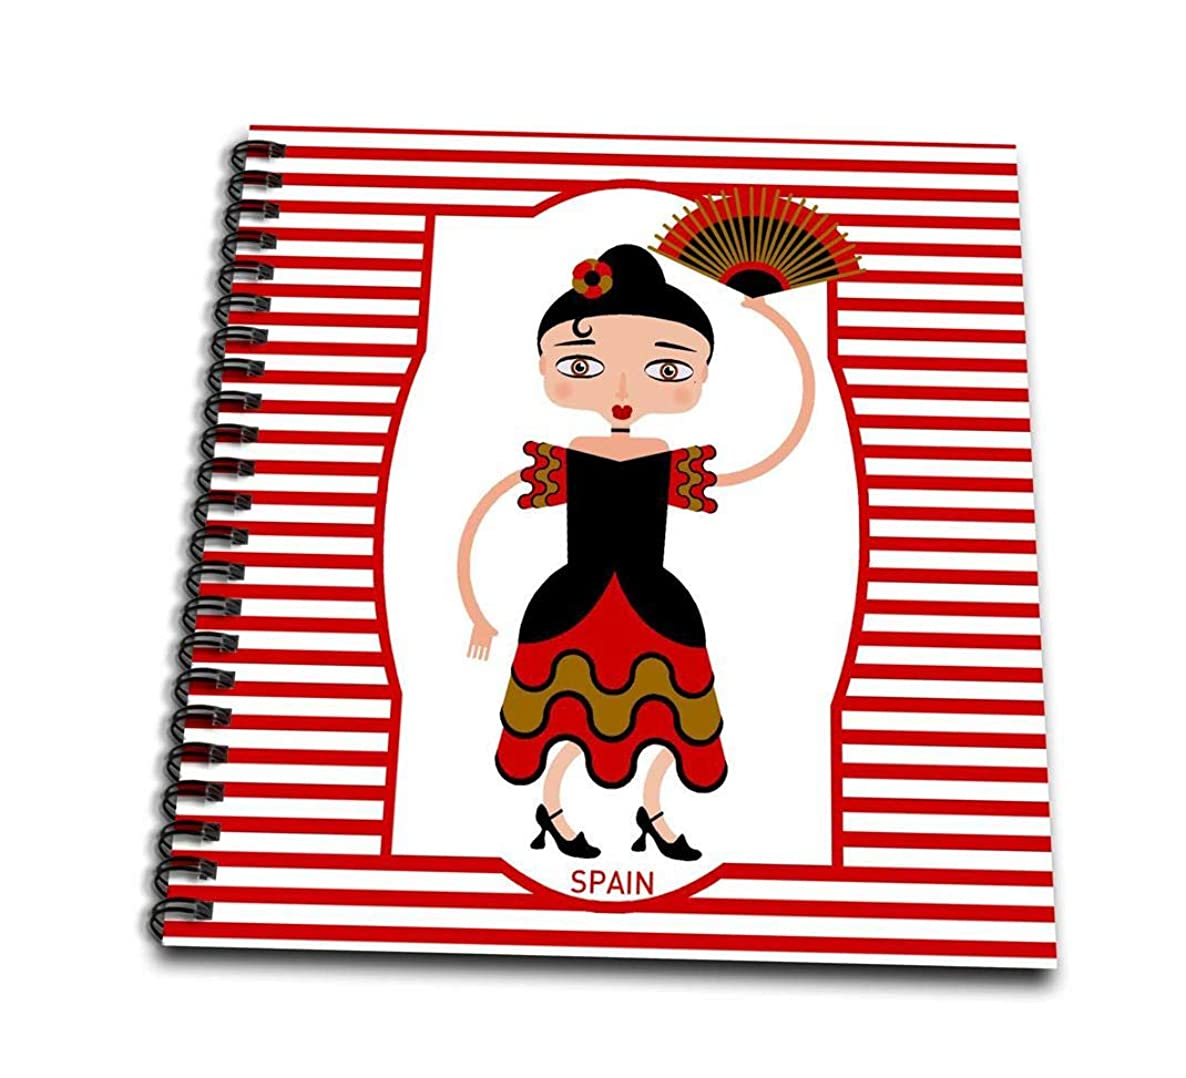 3dRose db_160621_1 Spain is Represented by a Flamenco Dancer, Flamenco is Spanish Popular Folk Music-Drawing Book, 8 by 8-Inch